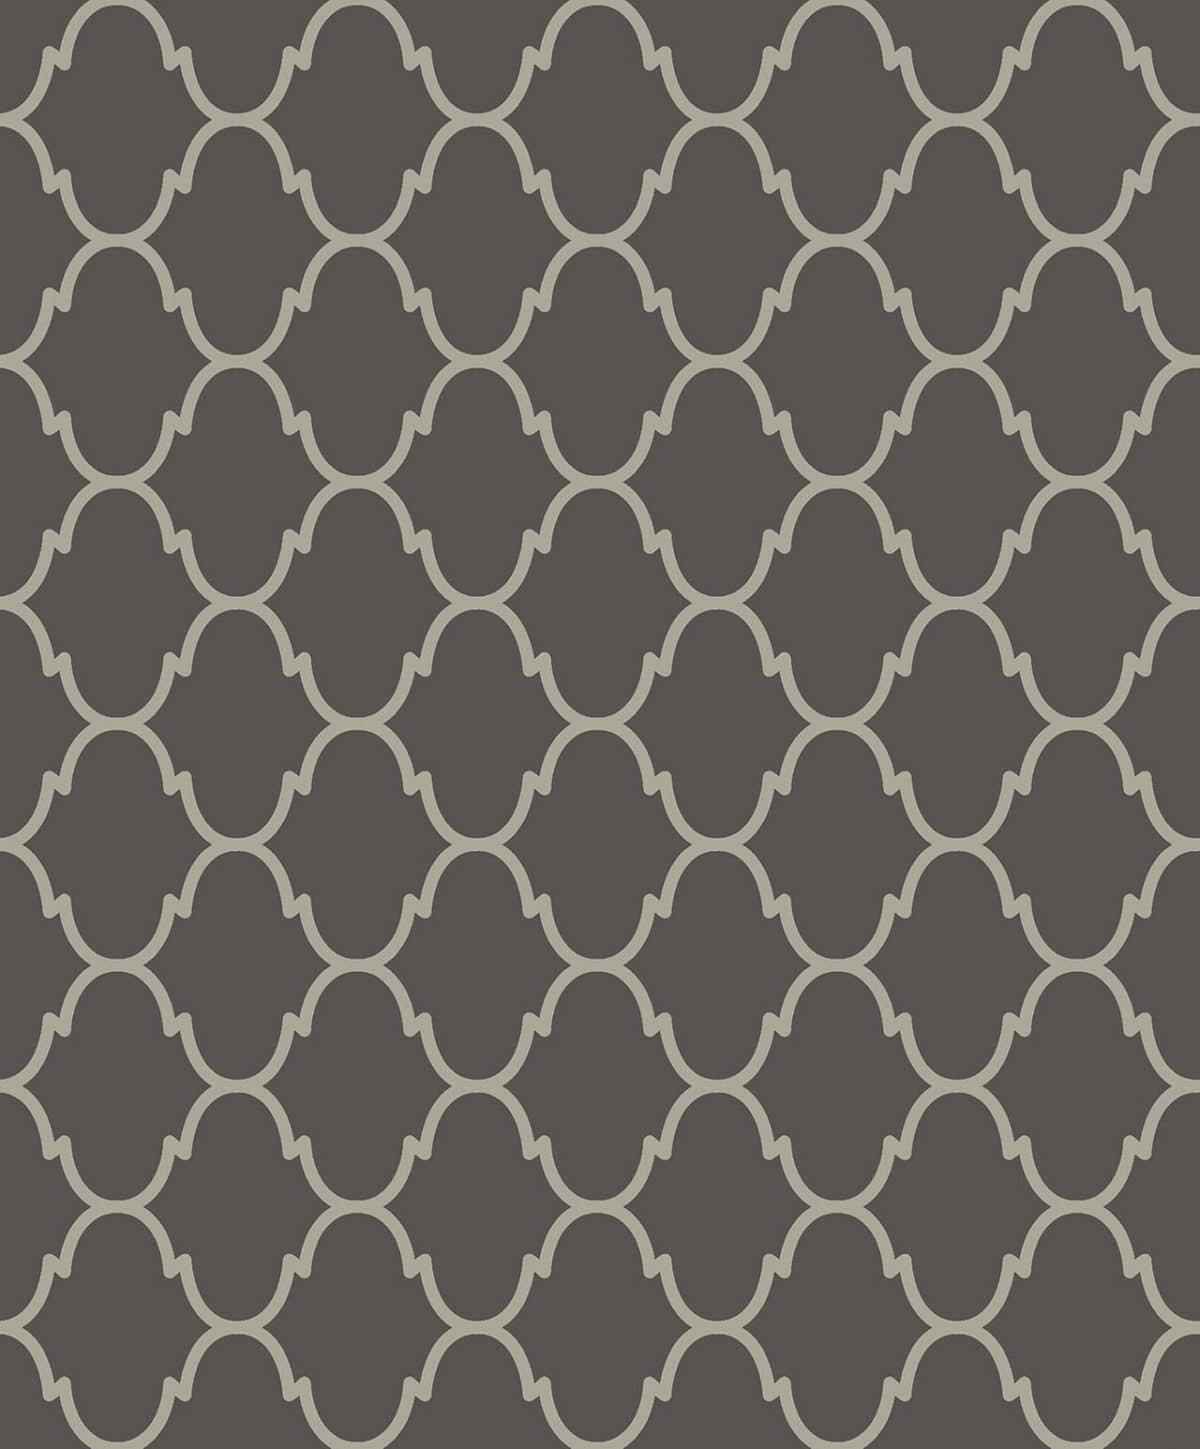 MARRAKESH TRUFFLE B decadence wallpaper-DC00154